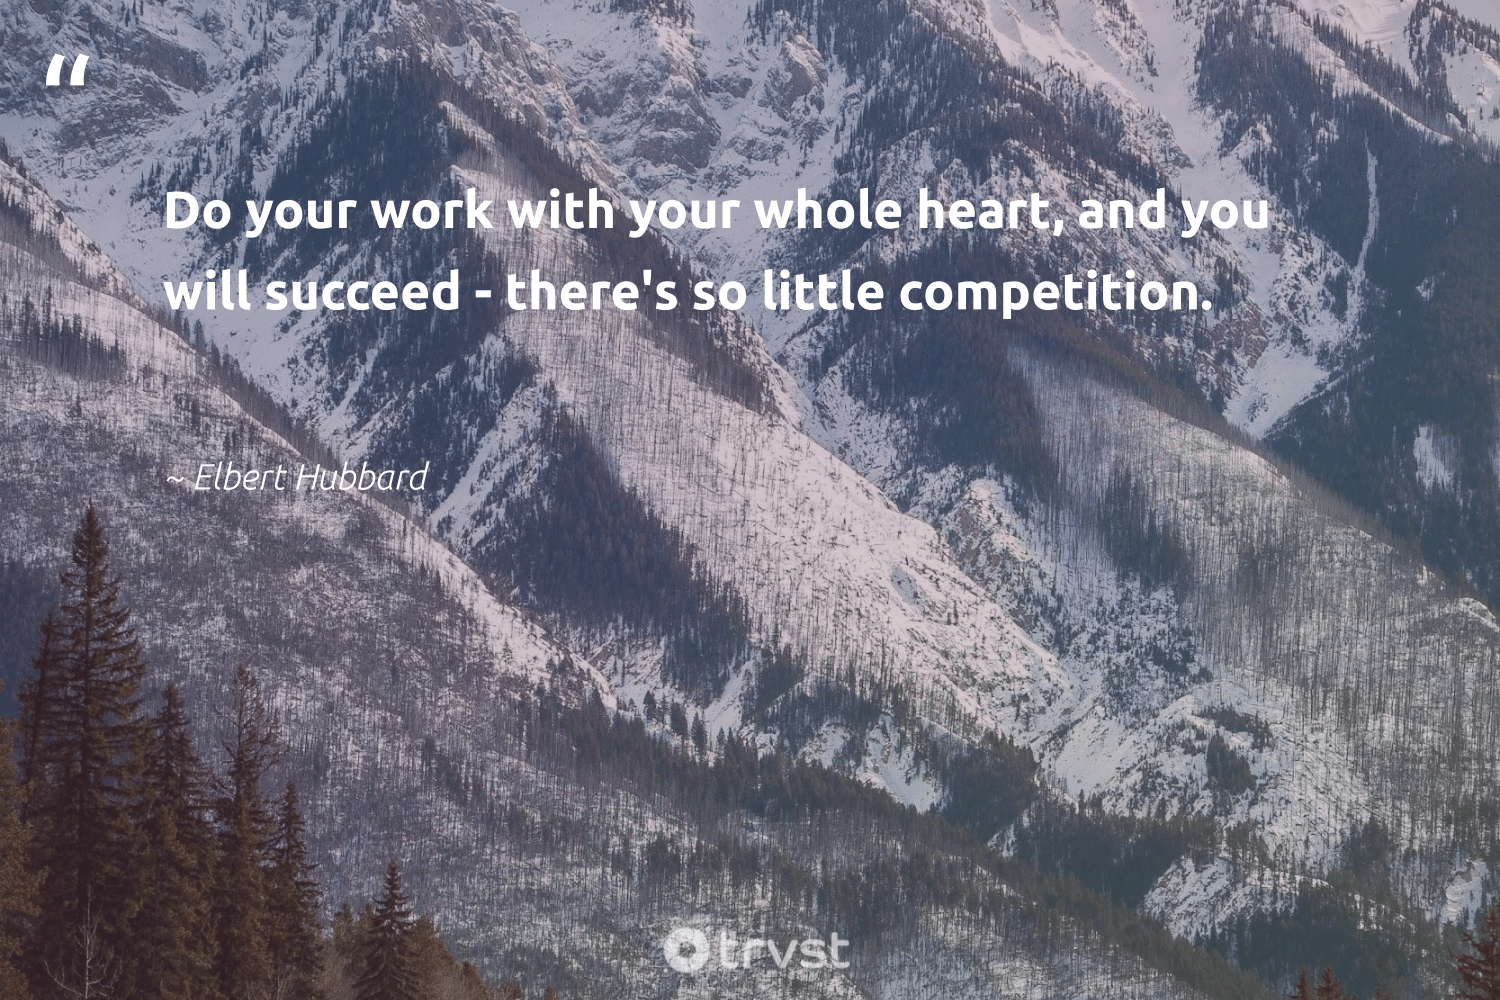 """""""Do your work with your whole heart, and you will succeed - there's so little competition.""""  - Elbert Hubbard #trvst #quotes #futureofwork #impact #softskills #gogreen #nevergiveup #bethechange #begreat #changetheworld #thinkgreen #socialchange"""